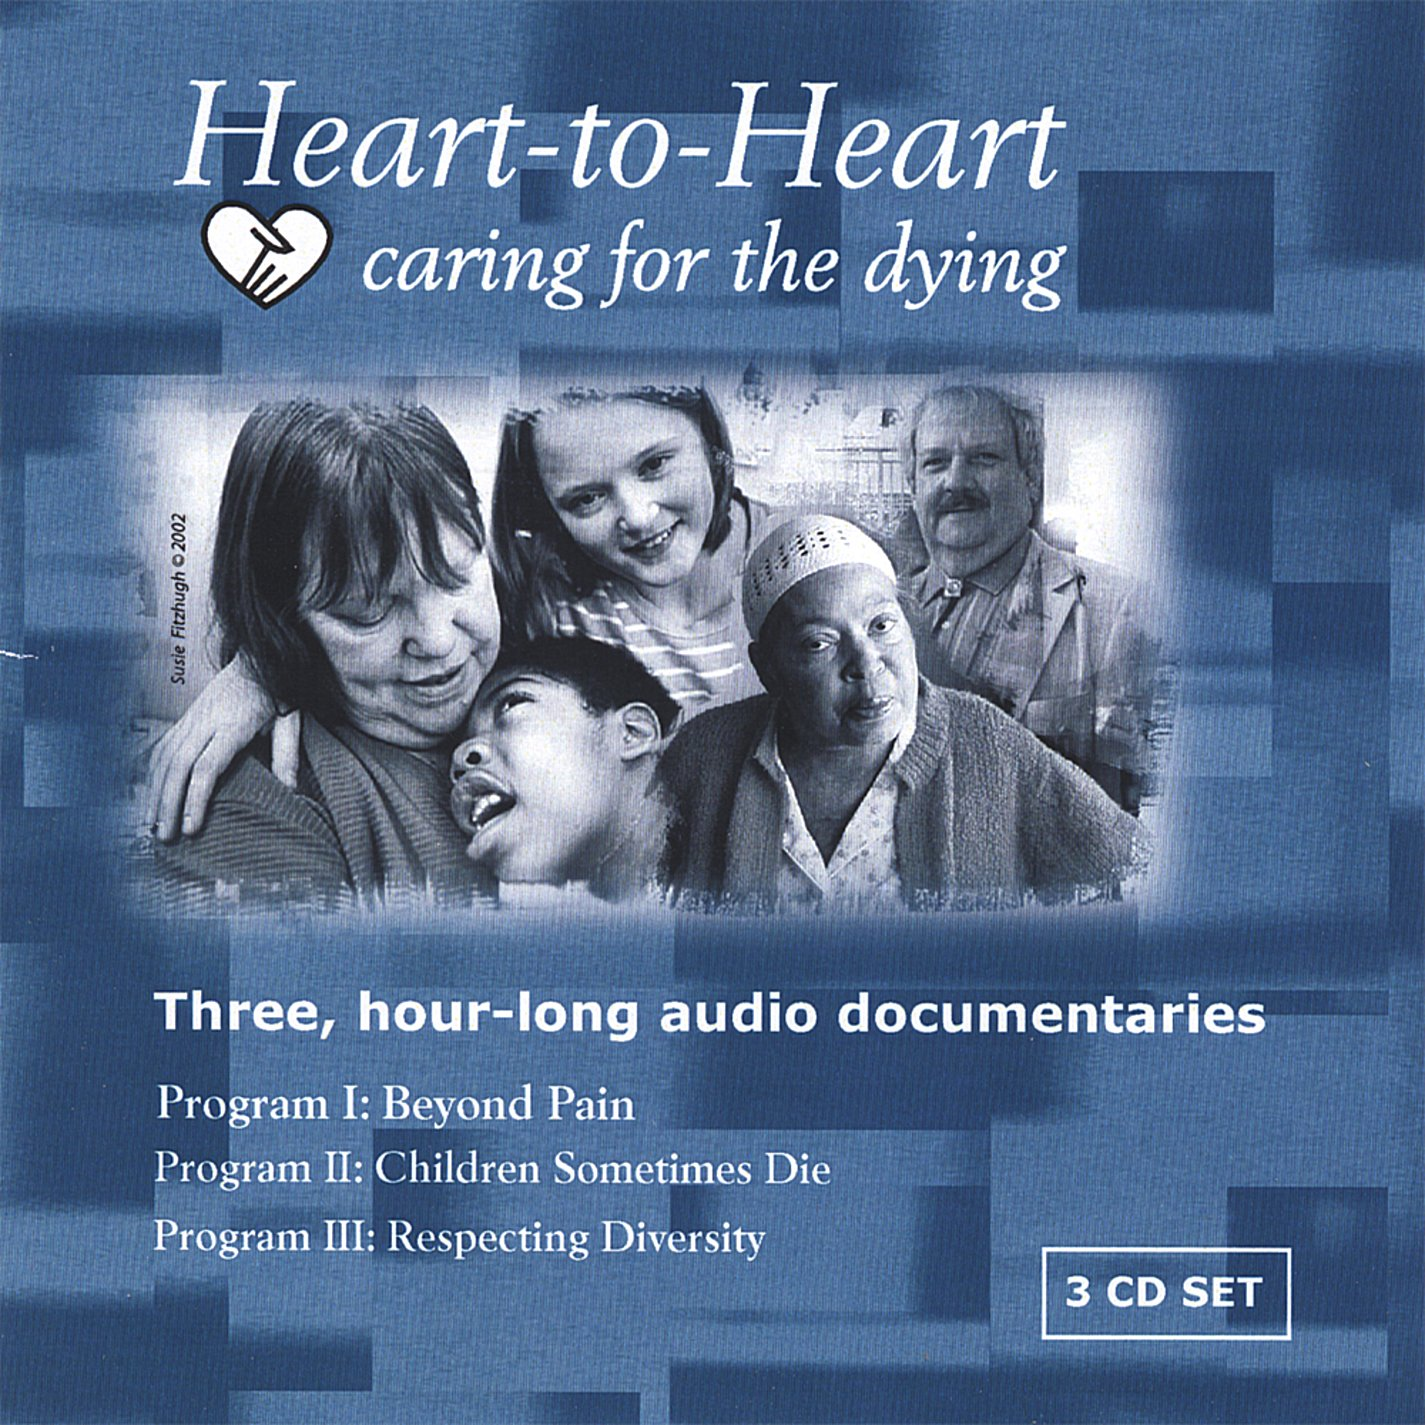 Heart-To-Heart: Caring for the Dying